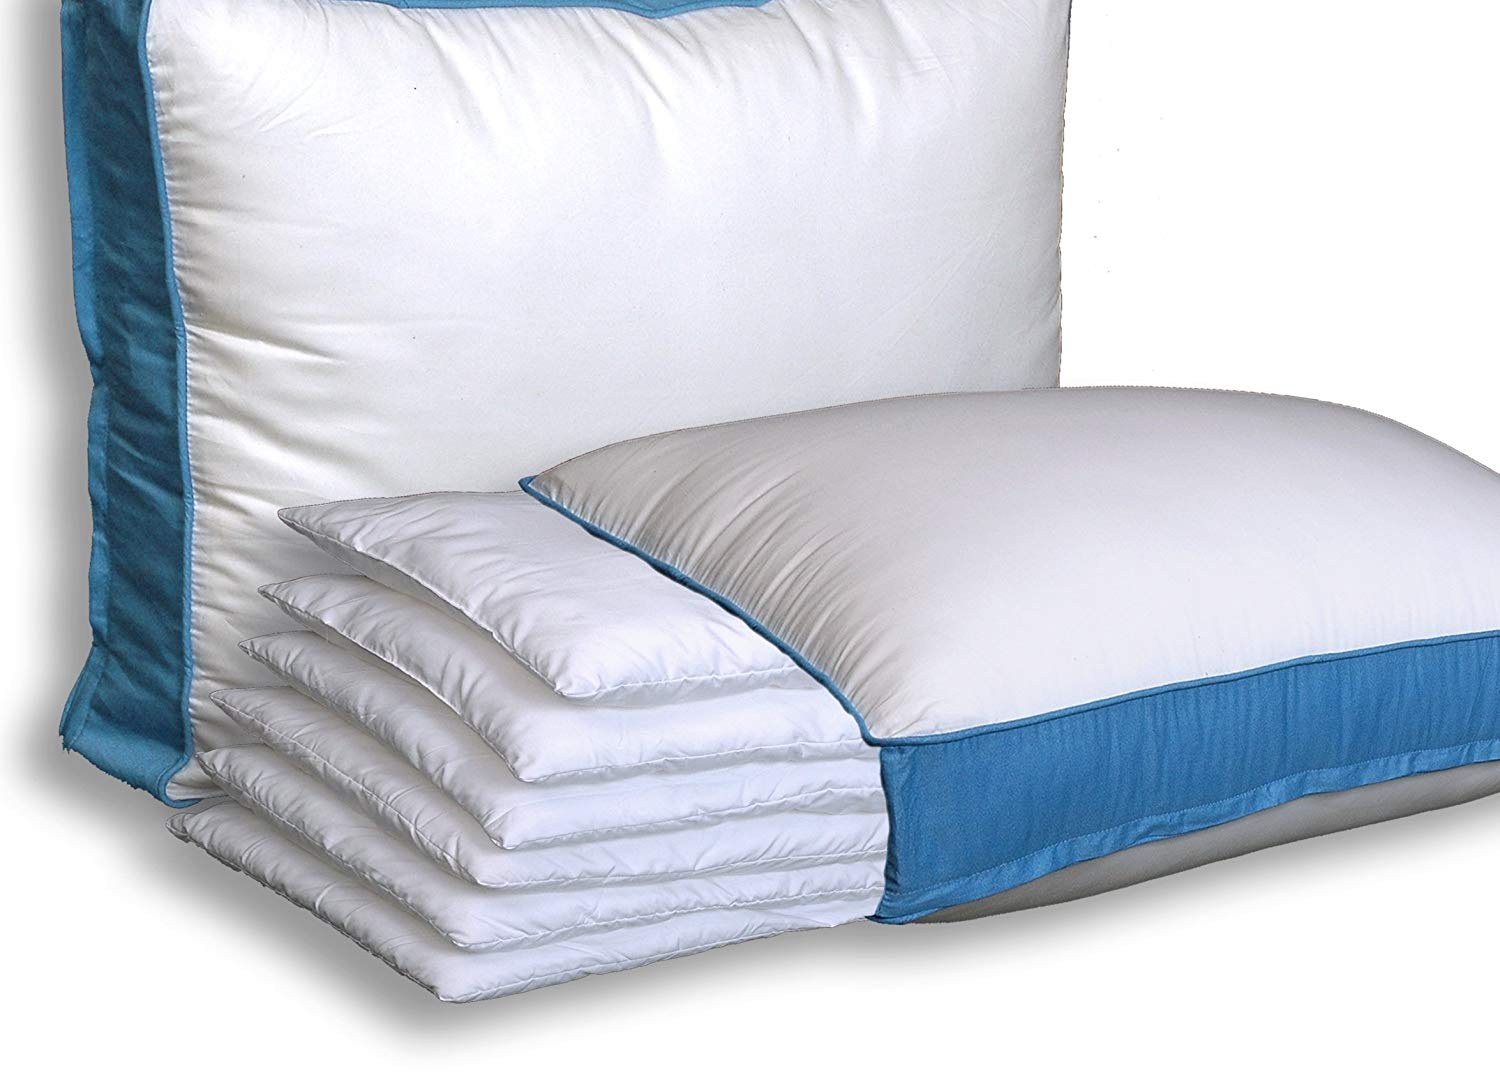 Pancake Pillow Flat Pillow Review by www.snoremagazine.com